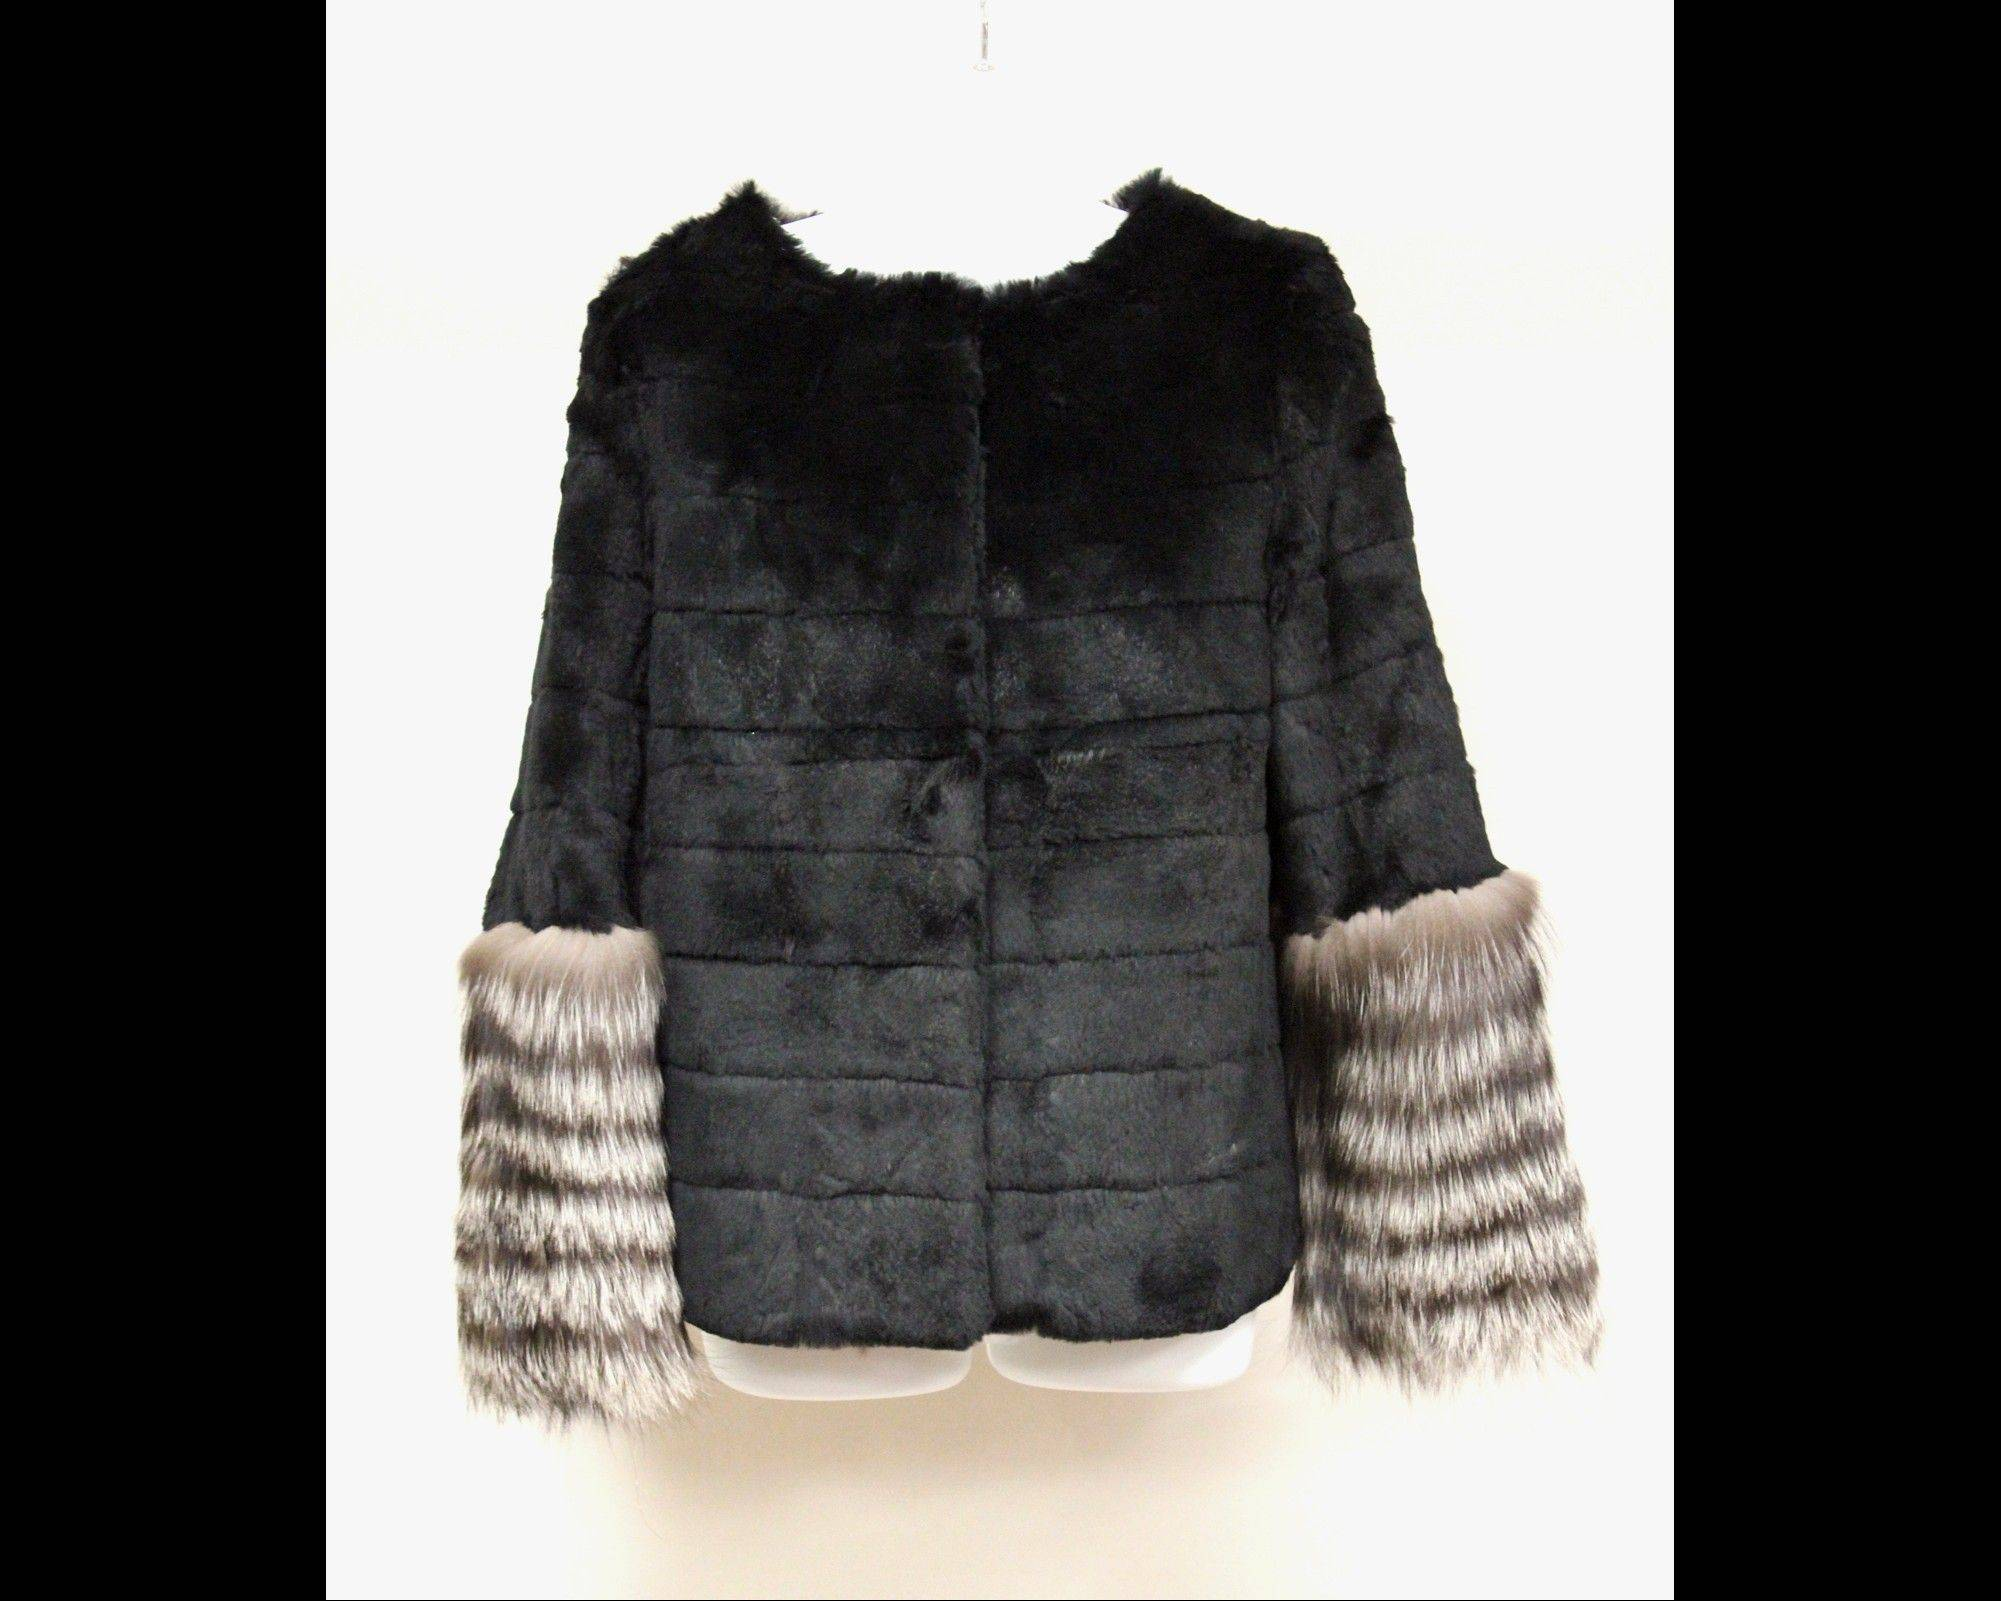 This undated photo provided by Texas-based Gaston & Sheehan Auctioneers, Inc. shows a woman's mink jacket with silver-fox sleeves that once belonged to former Illinois Congressman Jesse Jackson Jr. and his wife Sandi. It is among the items U.S. Marshals Service started selling in an online auction Tuesday in its attempt to recoup part of the $750,000 in campaign funds the Chicago Democrat and his wife illegally spent.